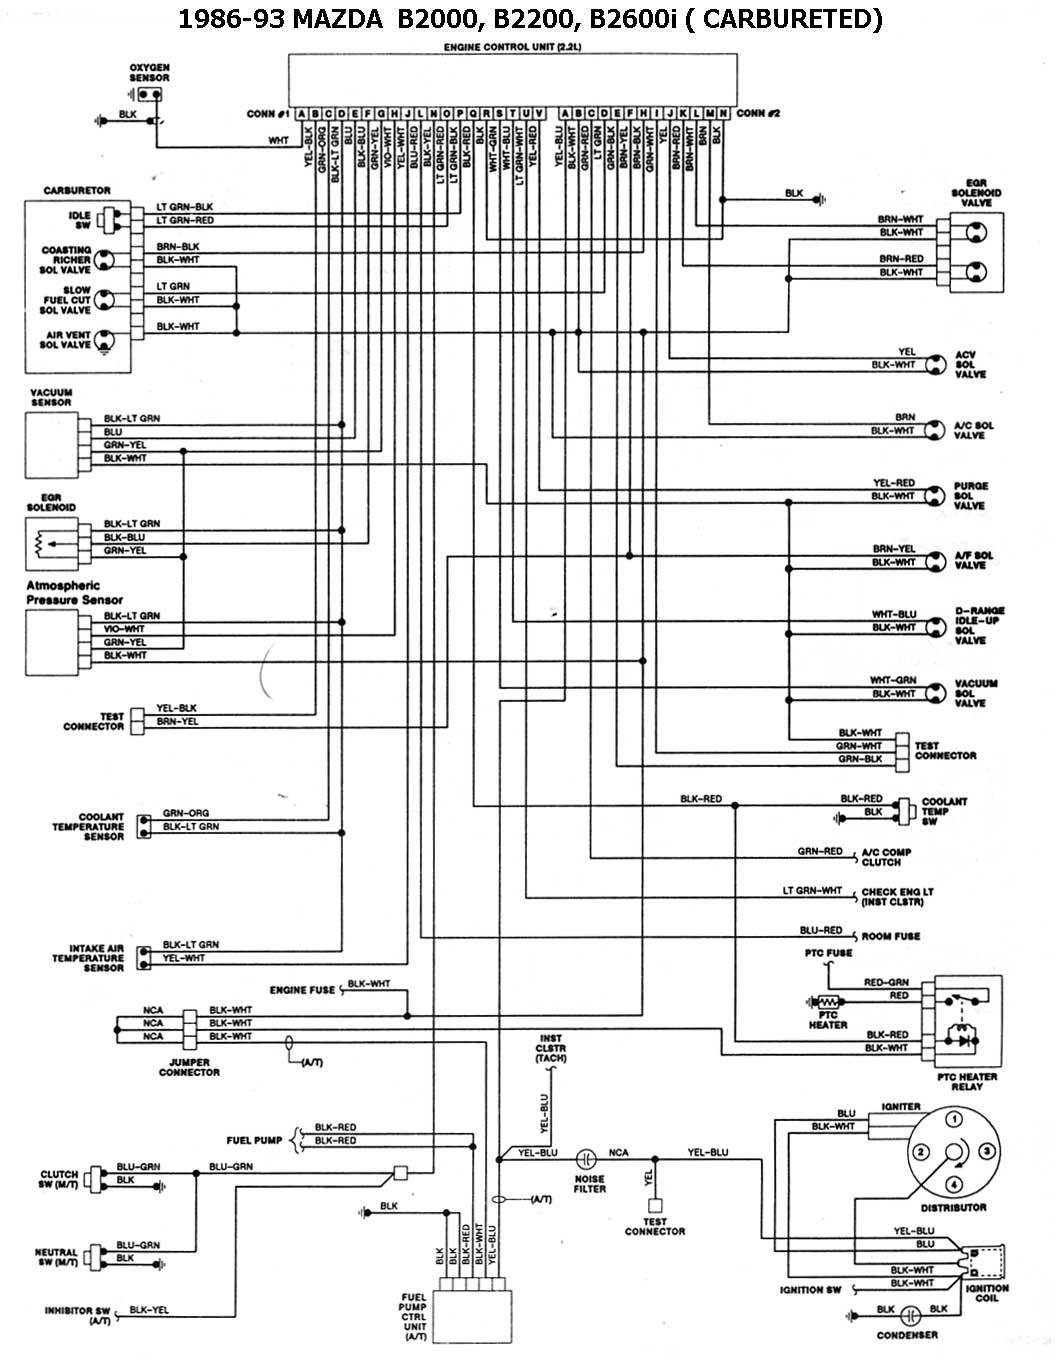 1991 mazda b2600i with Esqmzd001 on Mazda B2200 Distributor Wiring Diagram together with Mazda Alternator Wiring Diagram besides Mazda 2 Dy Wiring Diagram in addition Vacuum hose guide furthermore Mazda Millenia Ac Wiring Diagram.